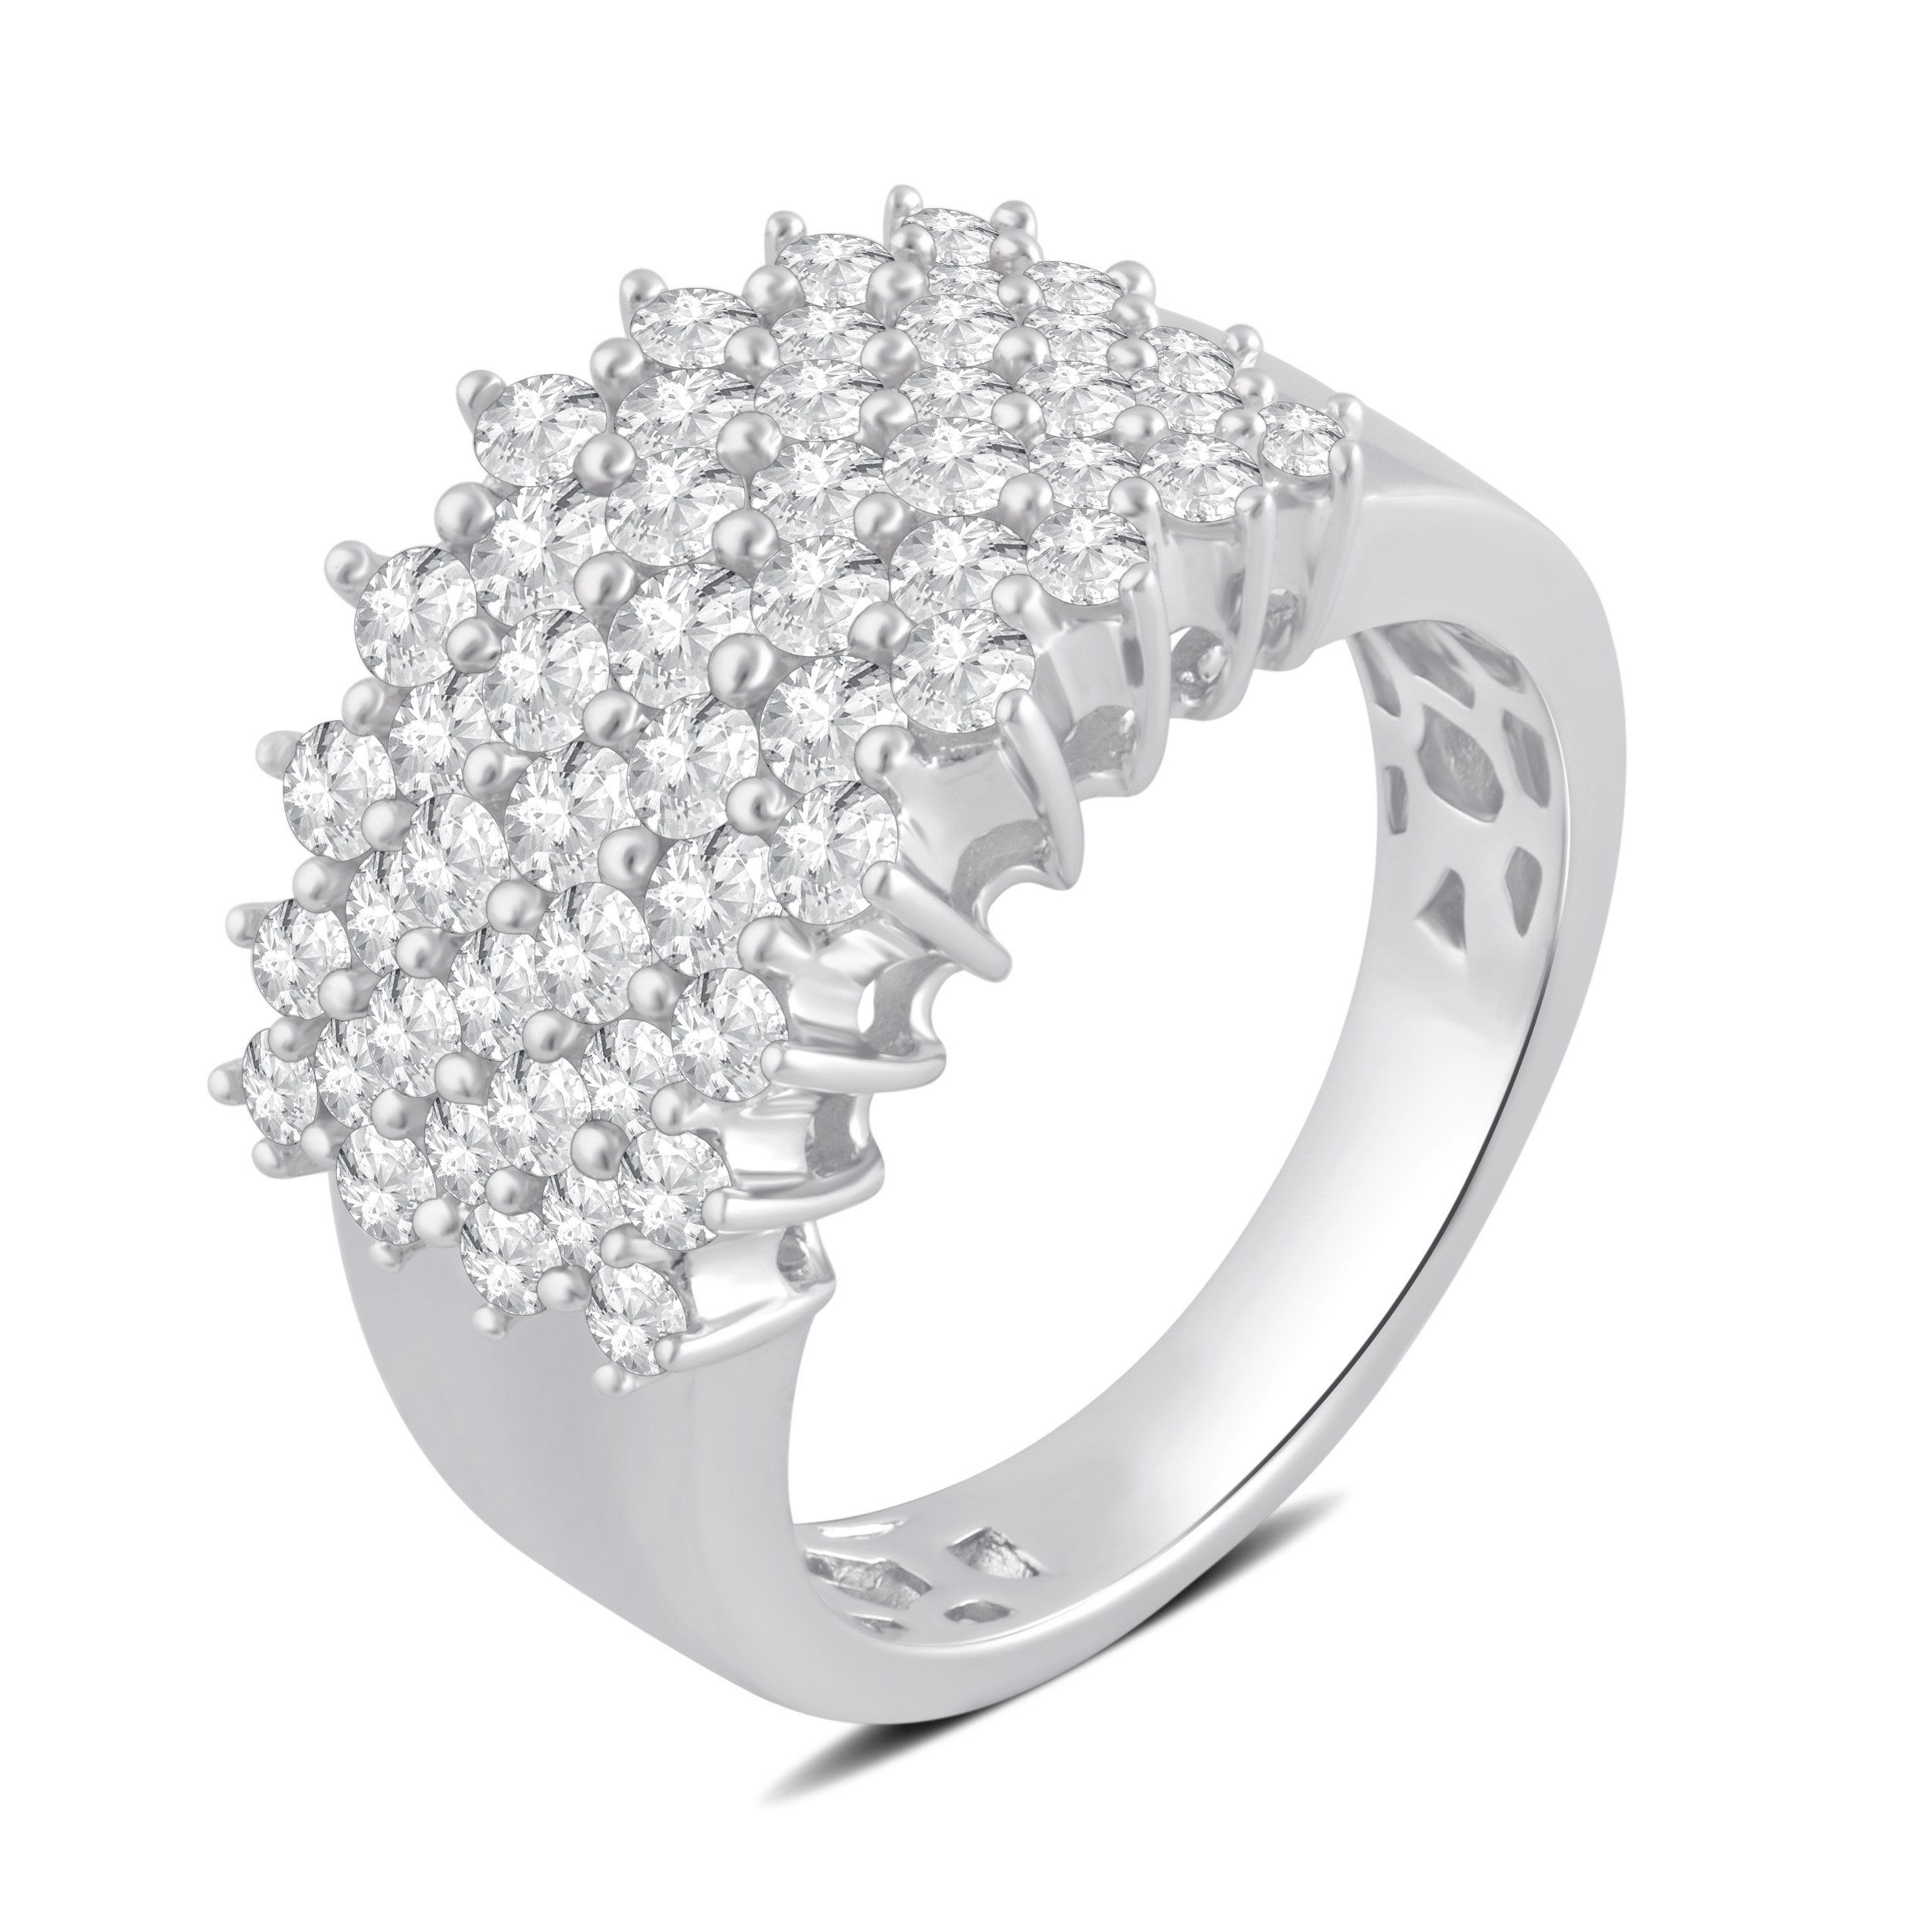 2.00 Cttw Diamond Anniversary Ring in Sterling Silver